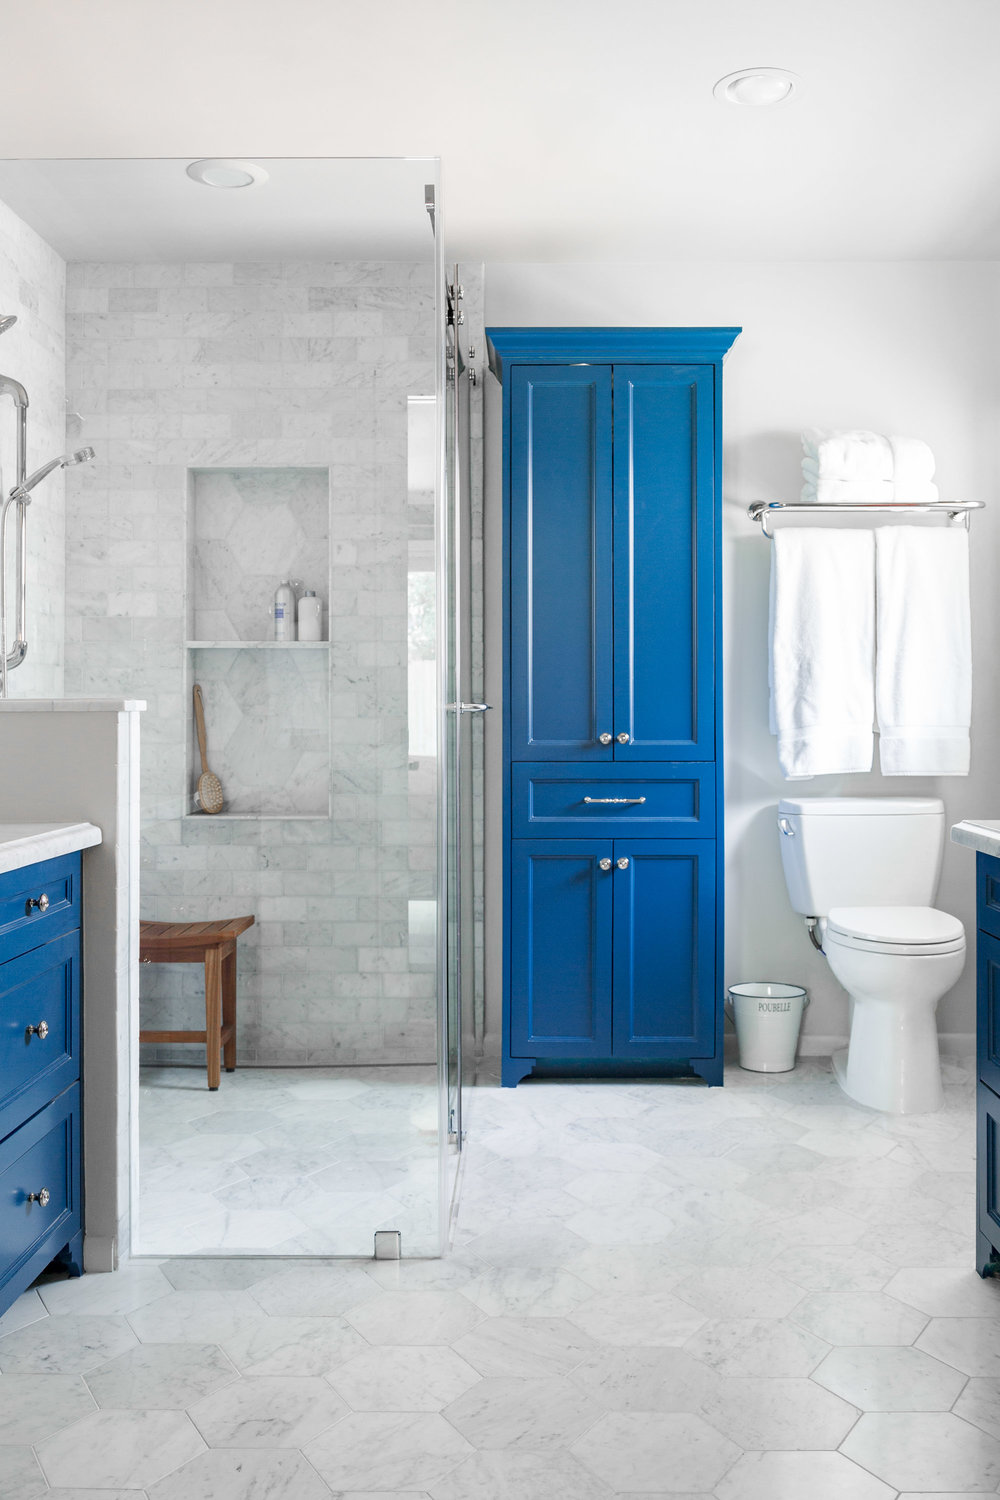 Carrara marble bathroom remodel with blue cabinetry | Carla Aston, Designer | Tori Aston, Photographer